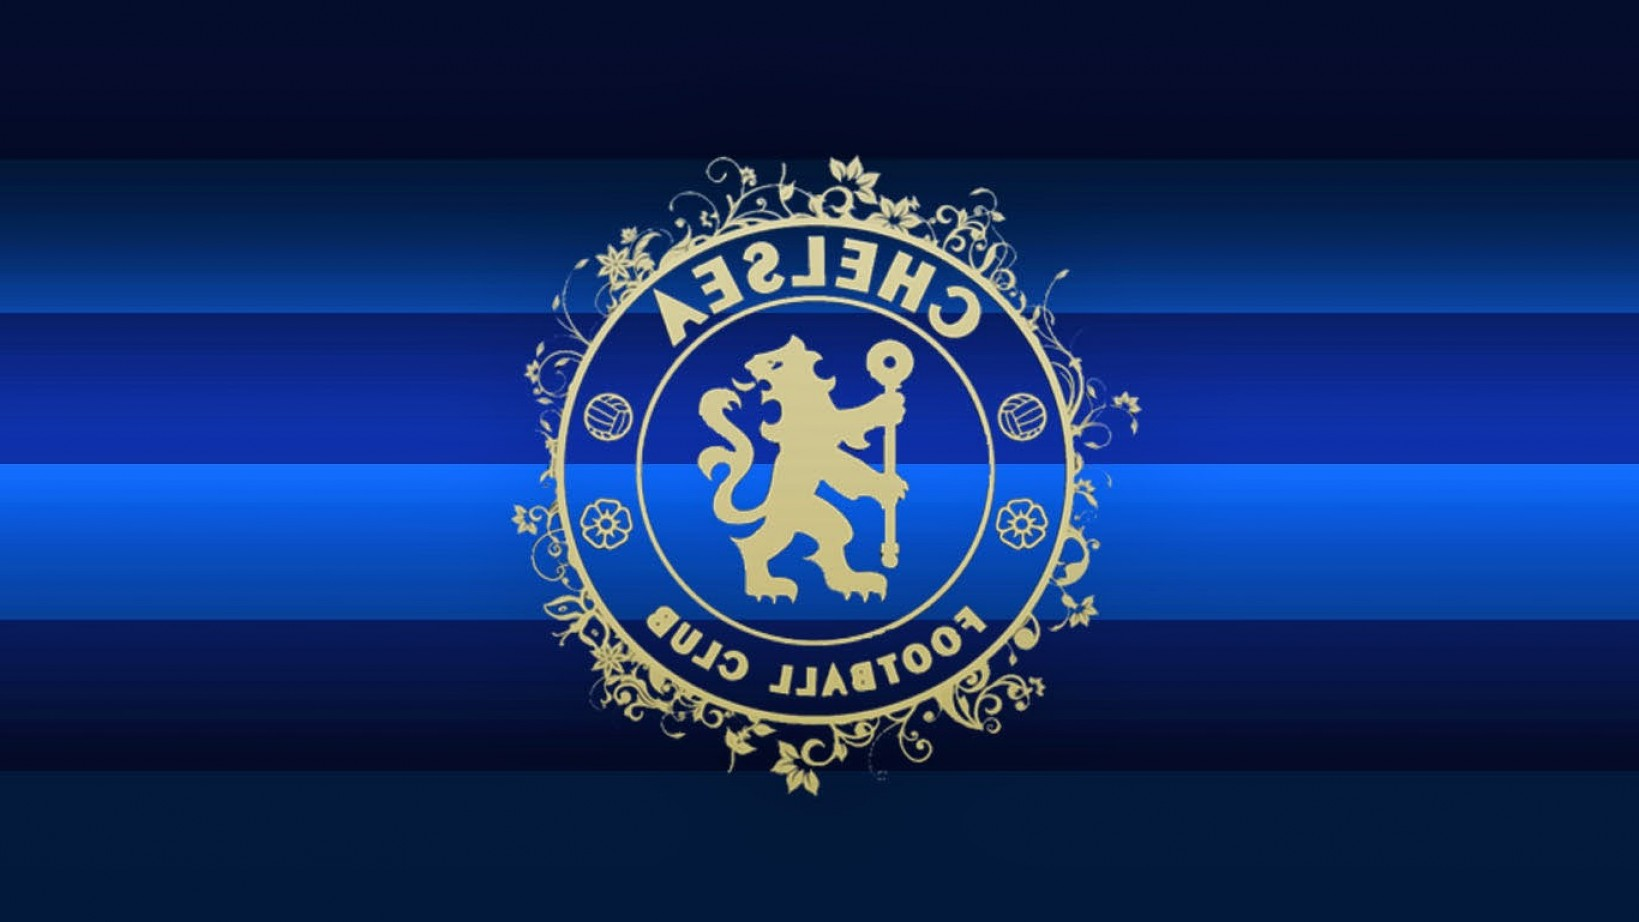 1639x922 Chelsea Fc Tumblr Chelsea Fc Team Of My Arenawp